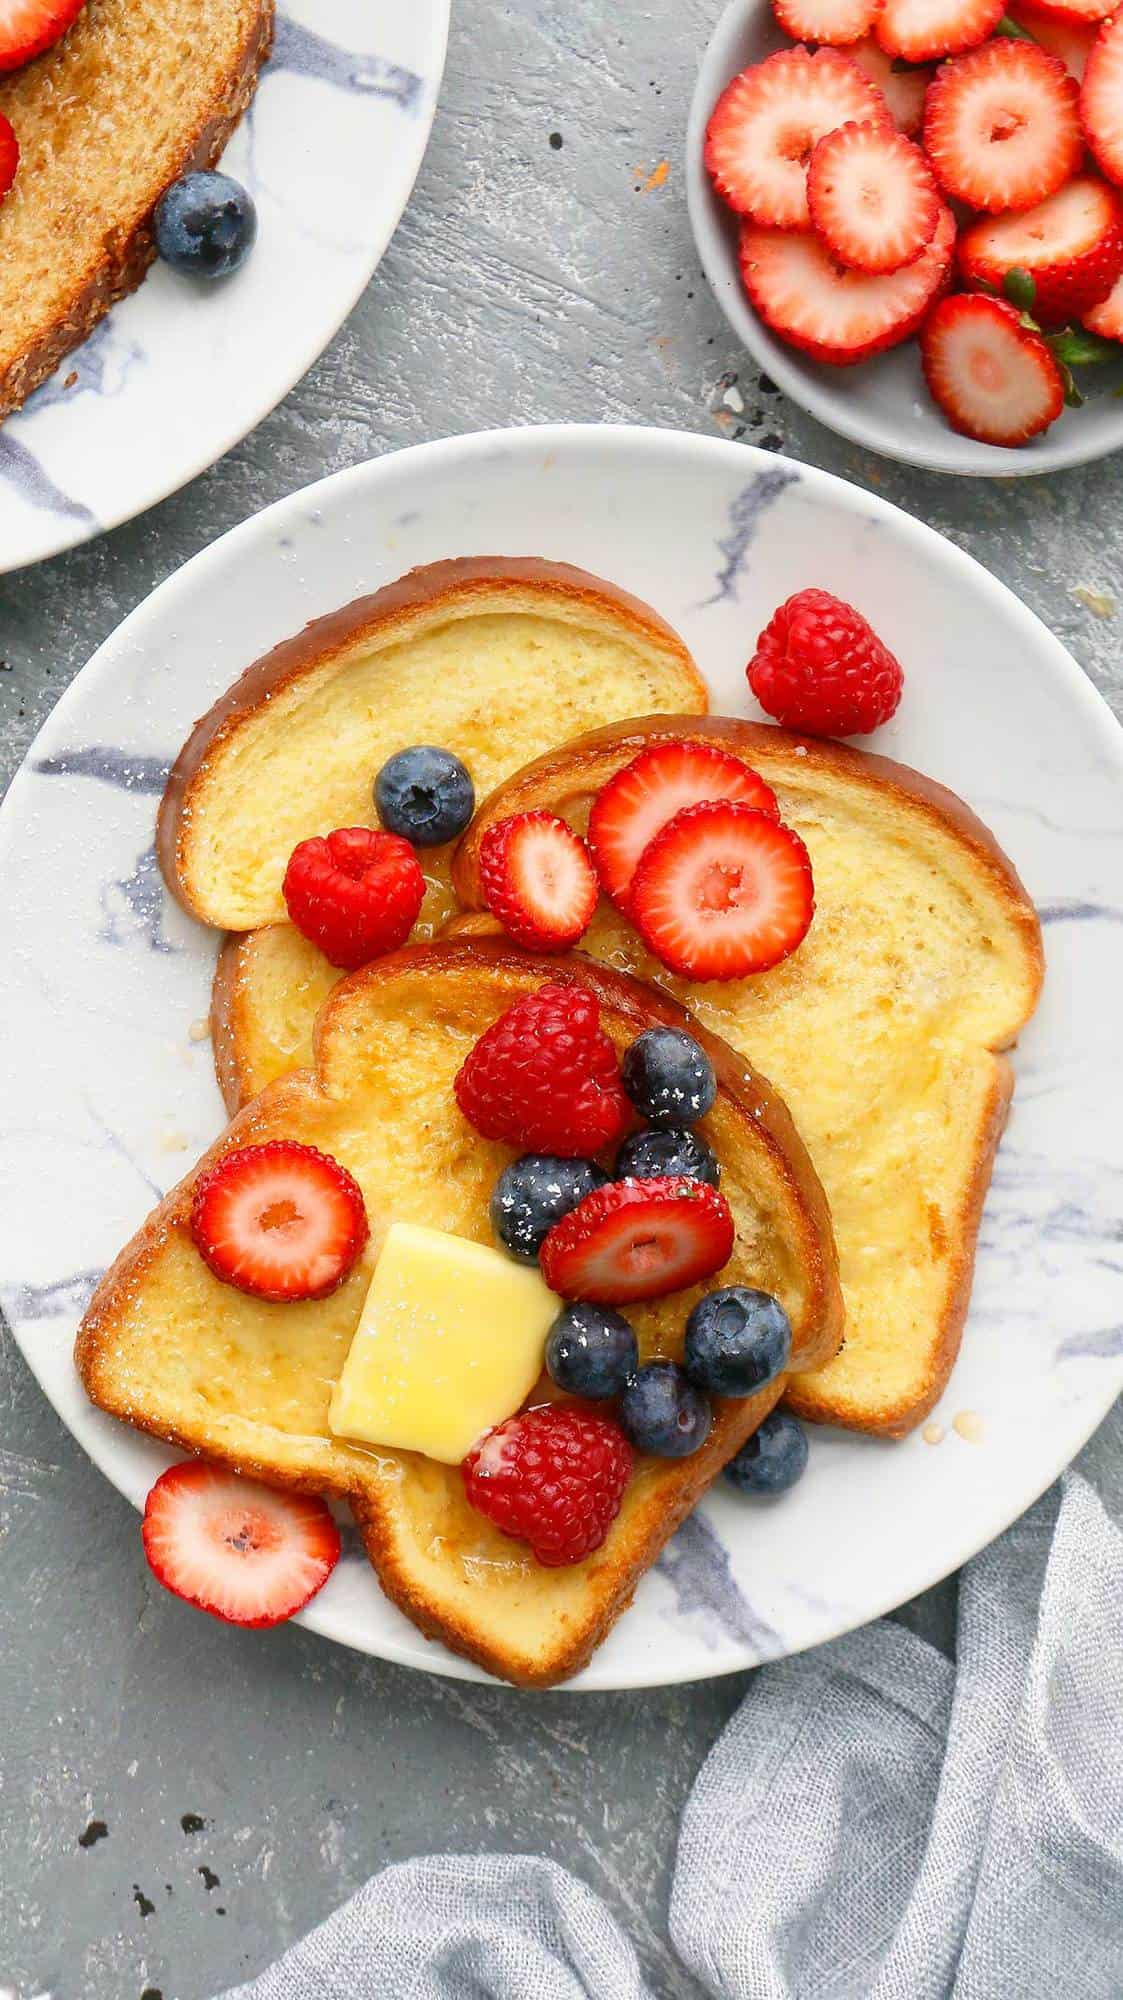 white and blue plates with toasts topped with butter and berries